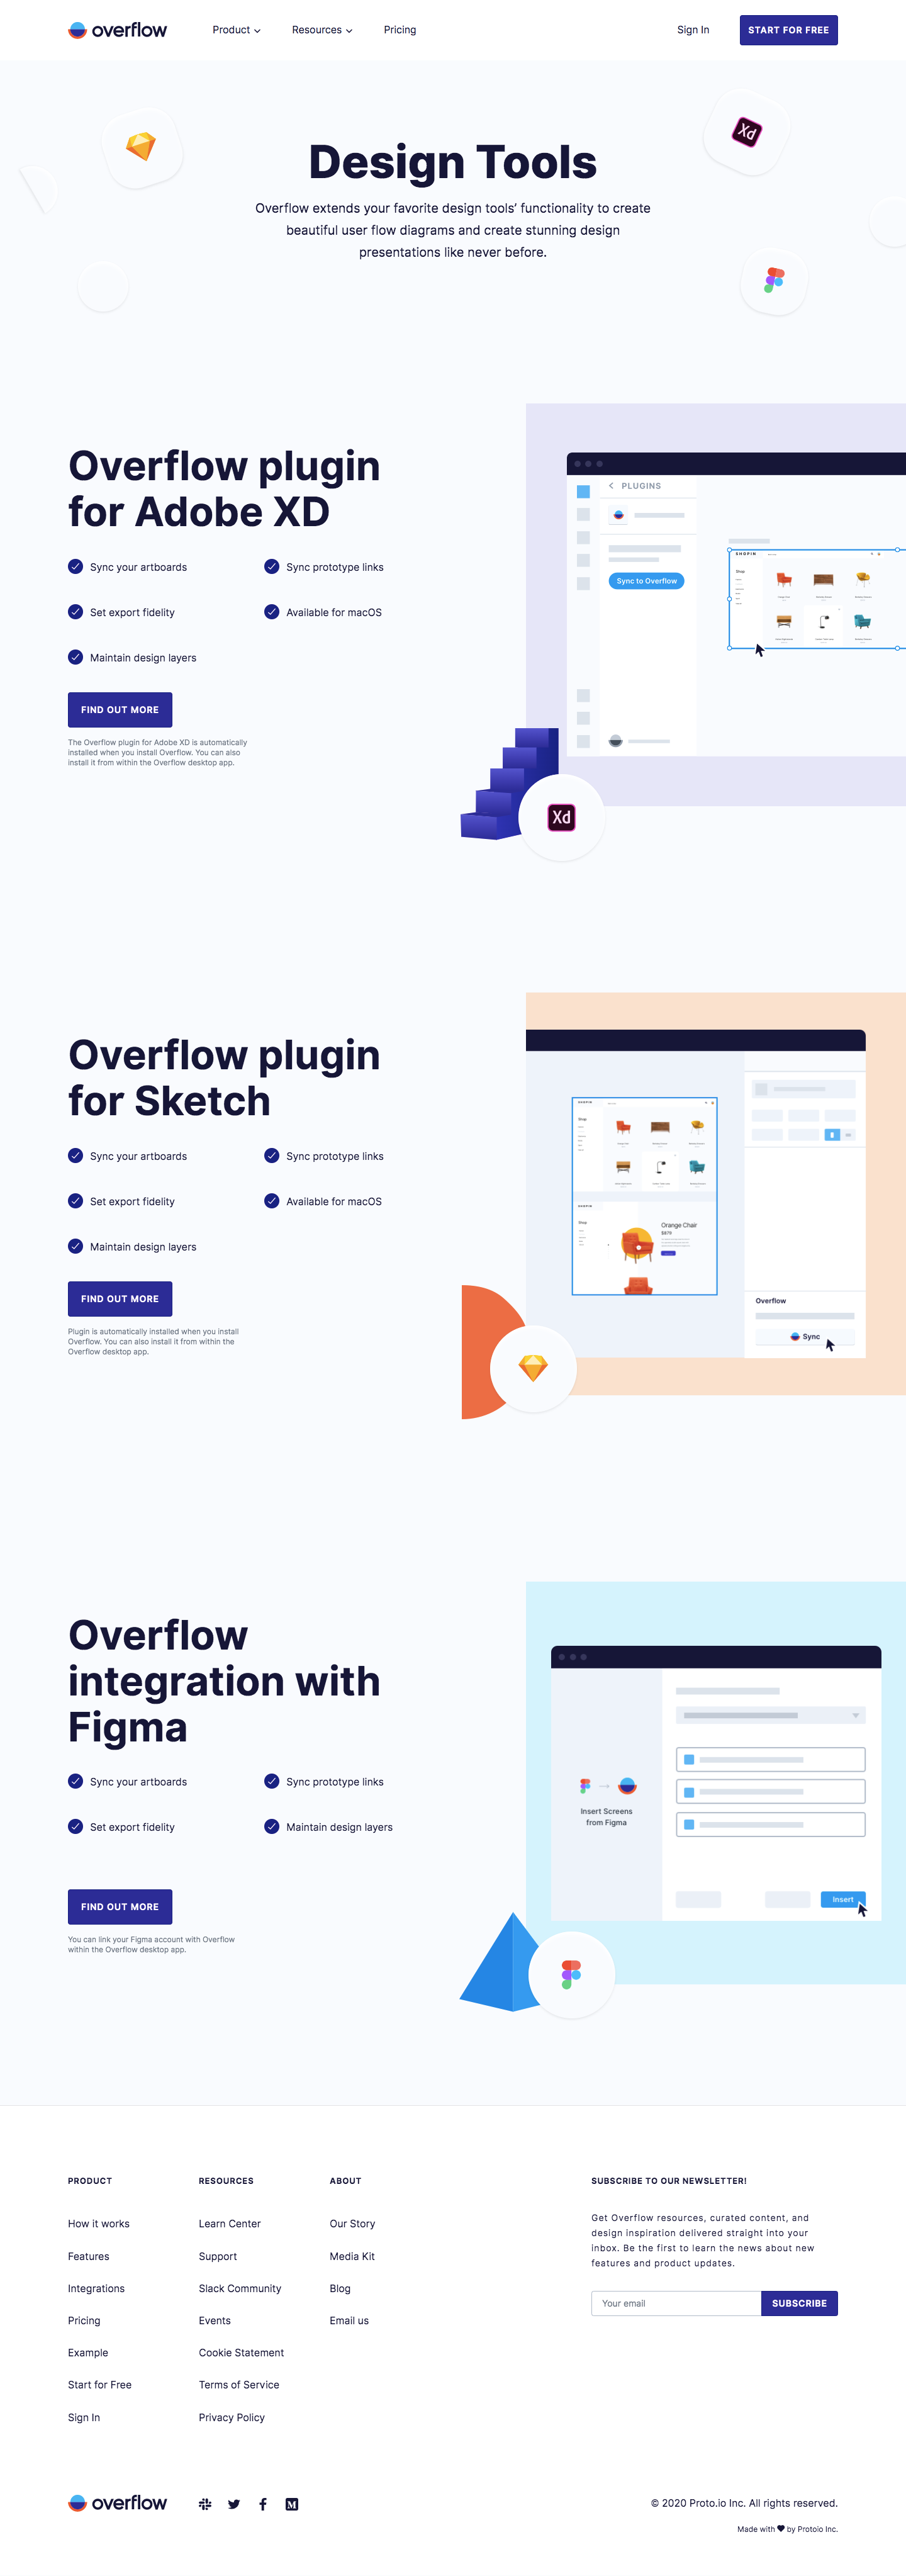 Overflow Integrations Page